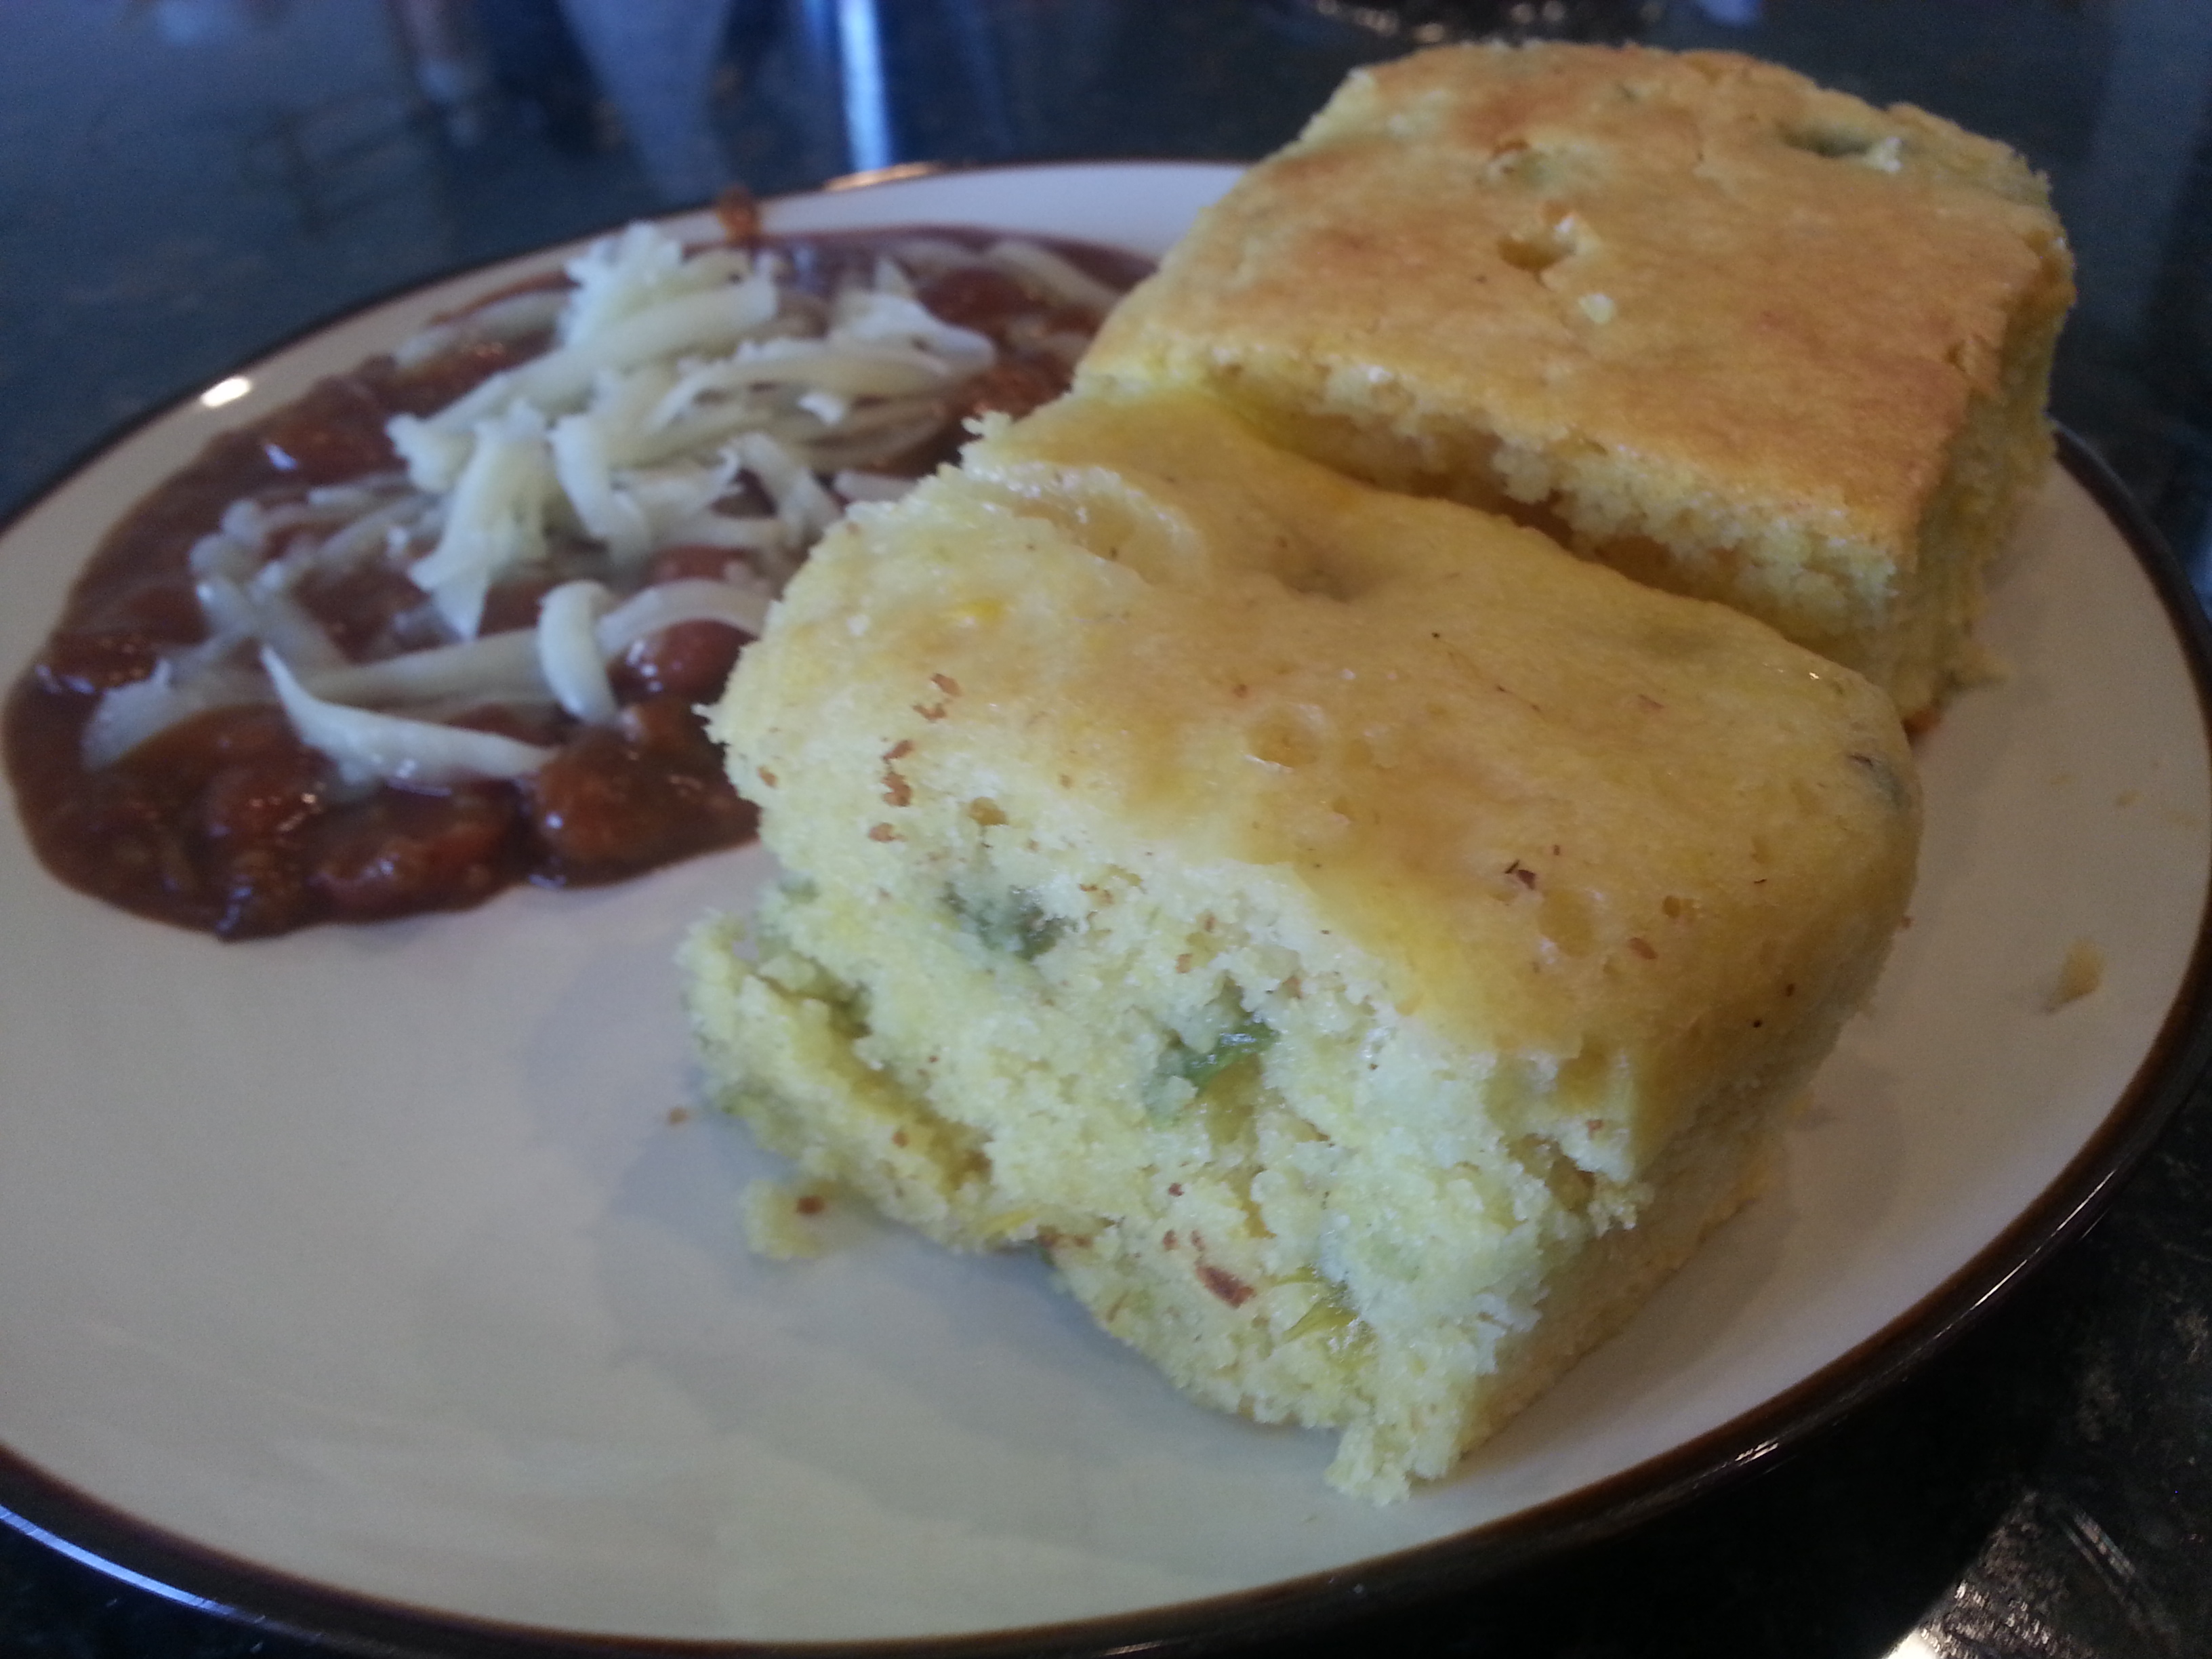 Ninja cooking system recipes - Extremely Moist Green Chili Cornbread